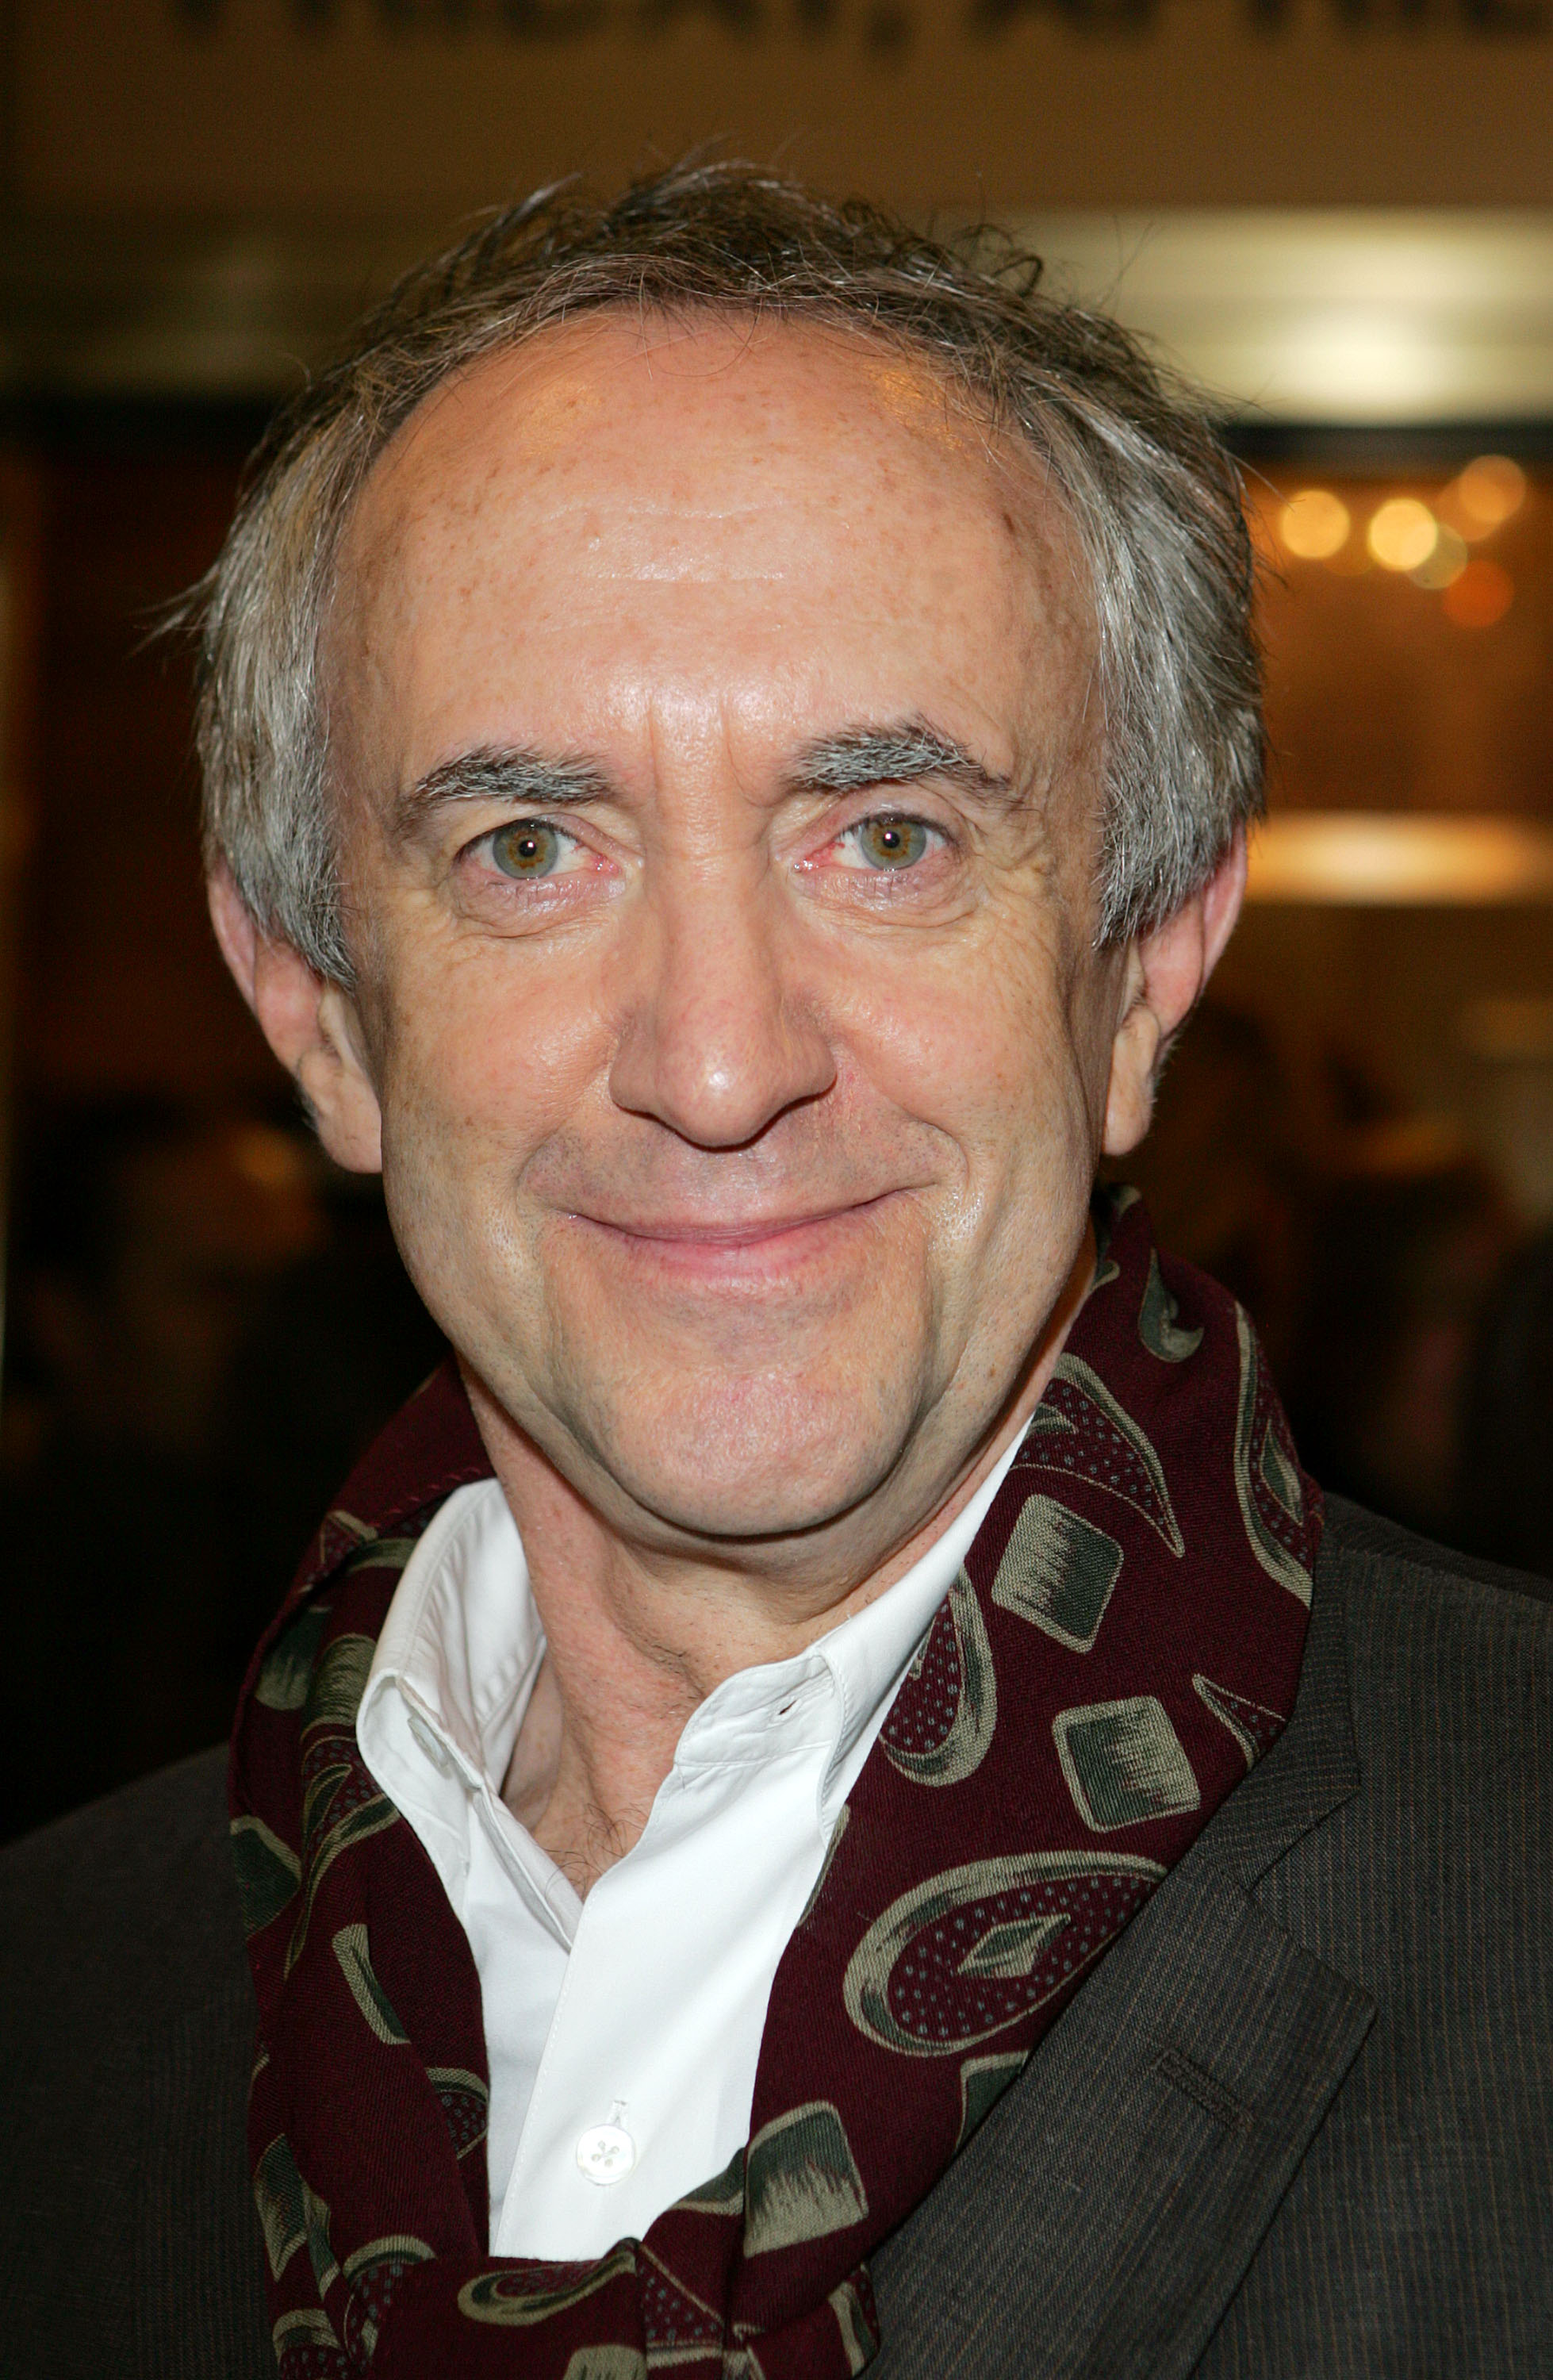 Jonathan Pryce (born 1947) nude photos 2019